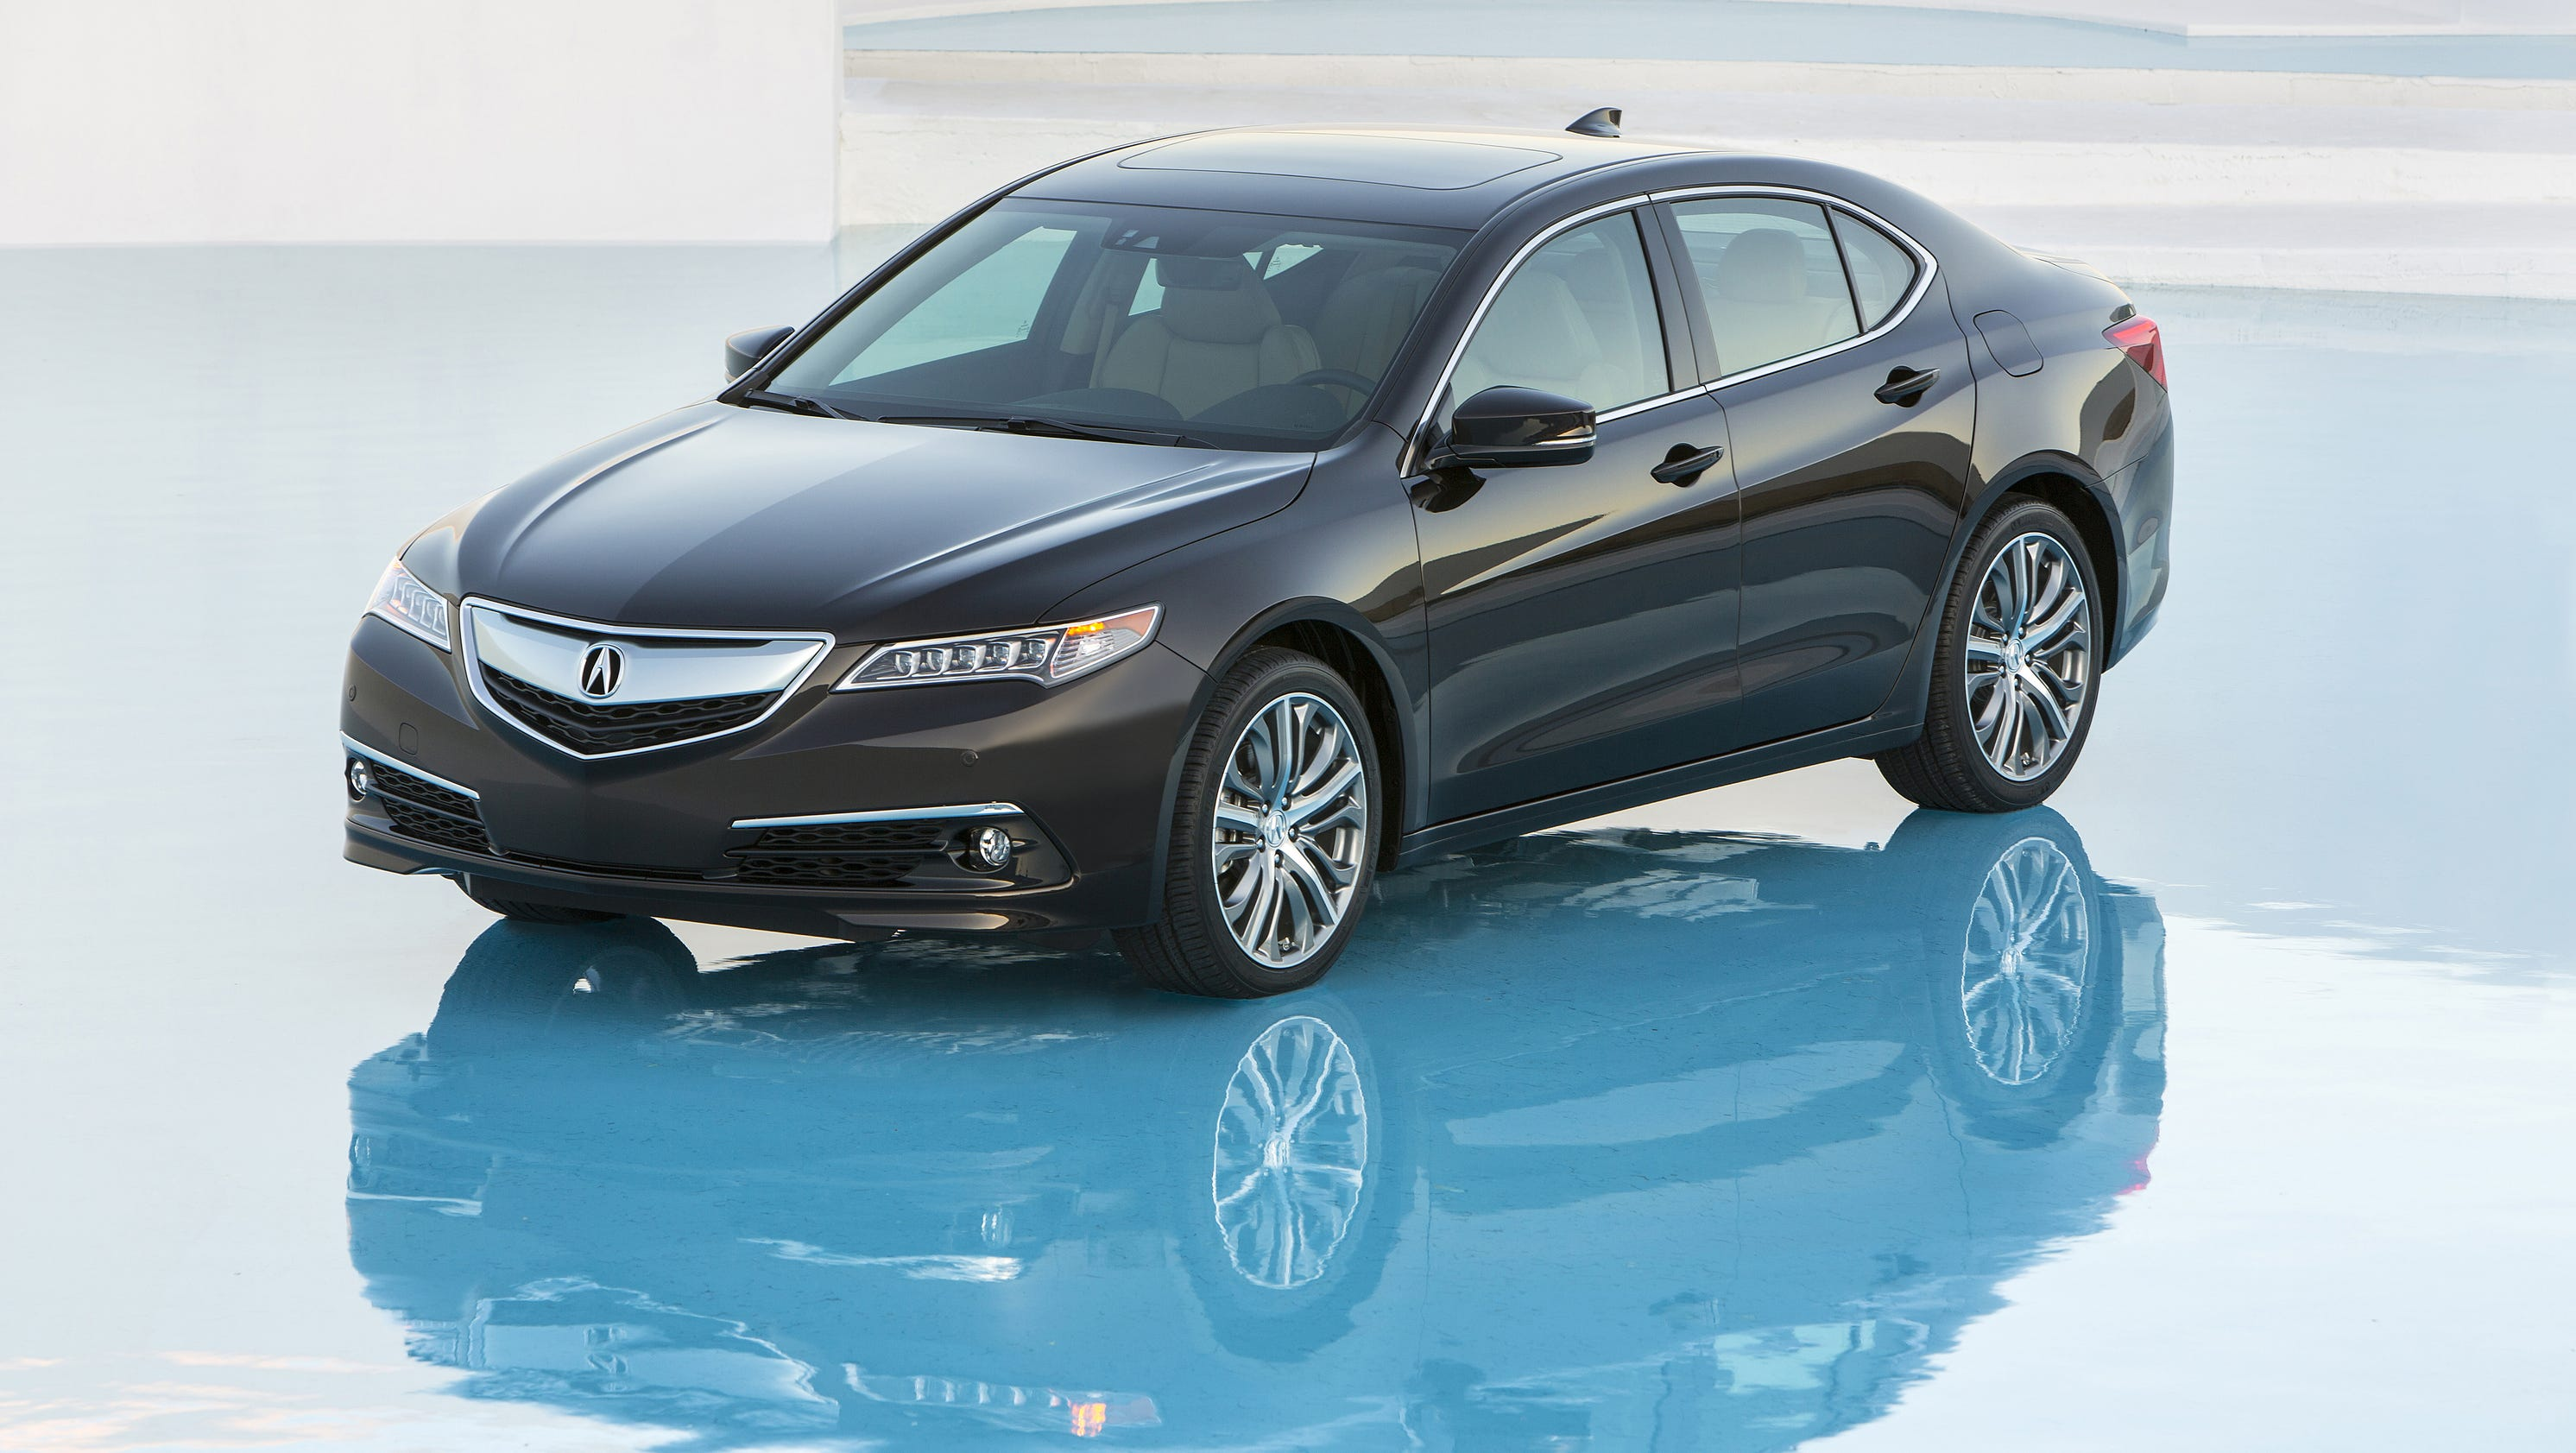 utility the acura fences detroit extra hitting of is models for show amid stride debuts swings riding rdx automotive its suv tech fray officially look flurry a new now high auto vehicle joining and with